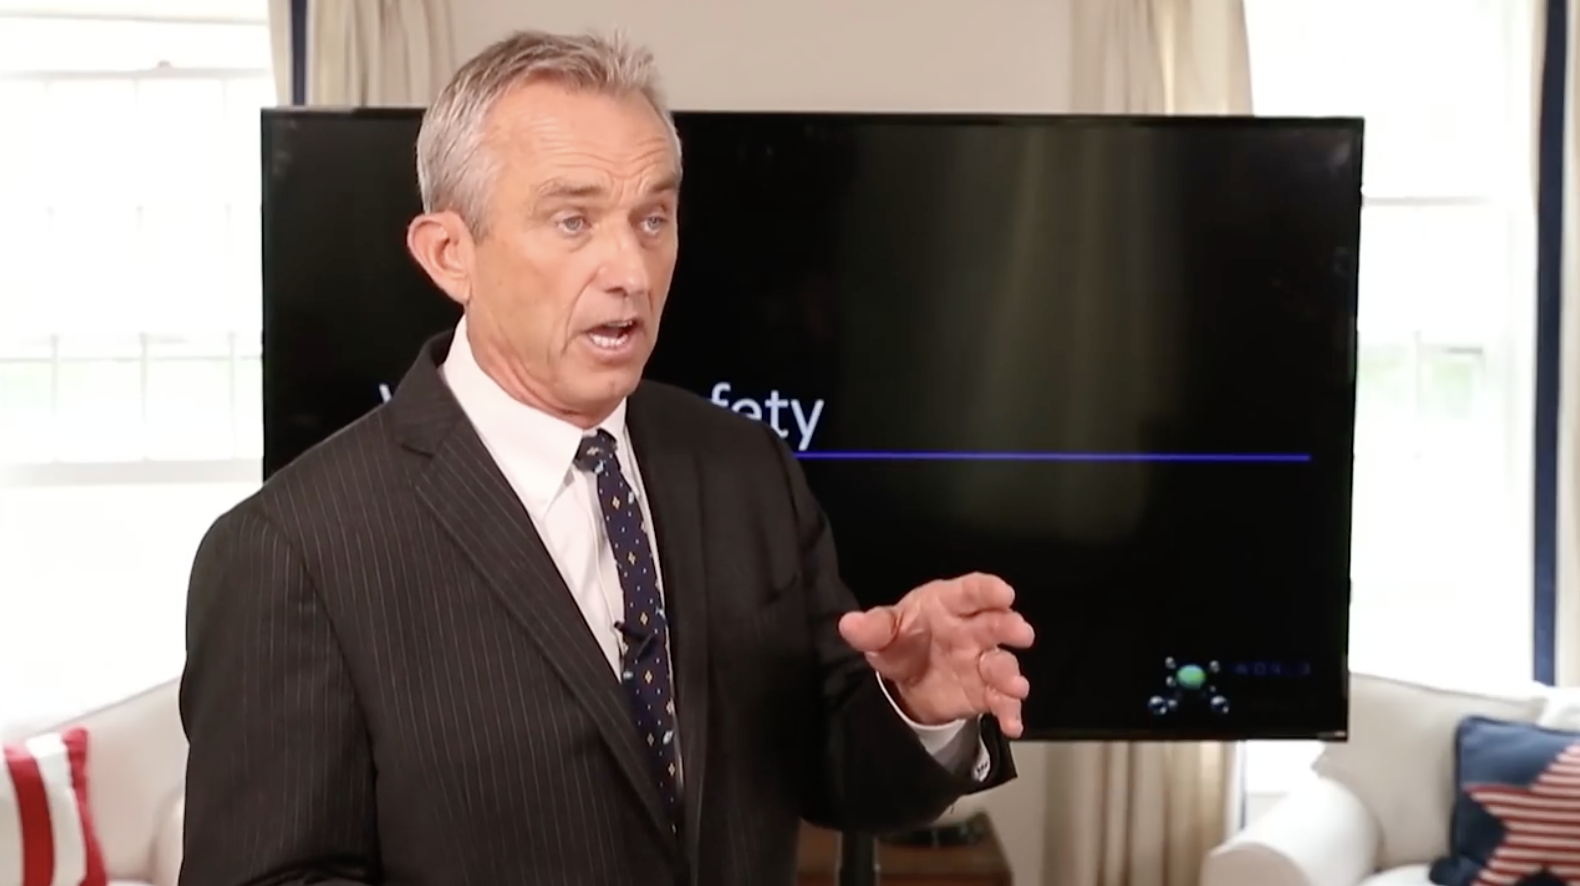 Image: Robert F. Kennedy Jr's World Mercury Project delivers vaccine safety details to Congress